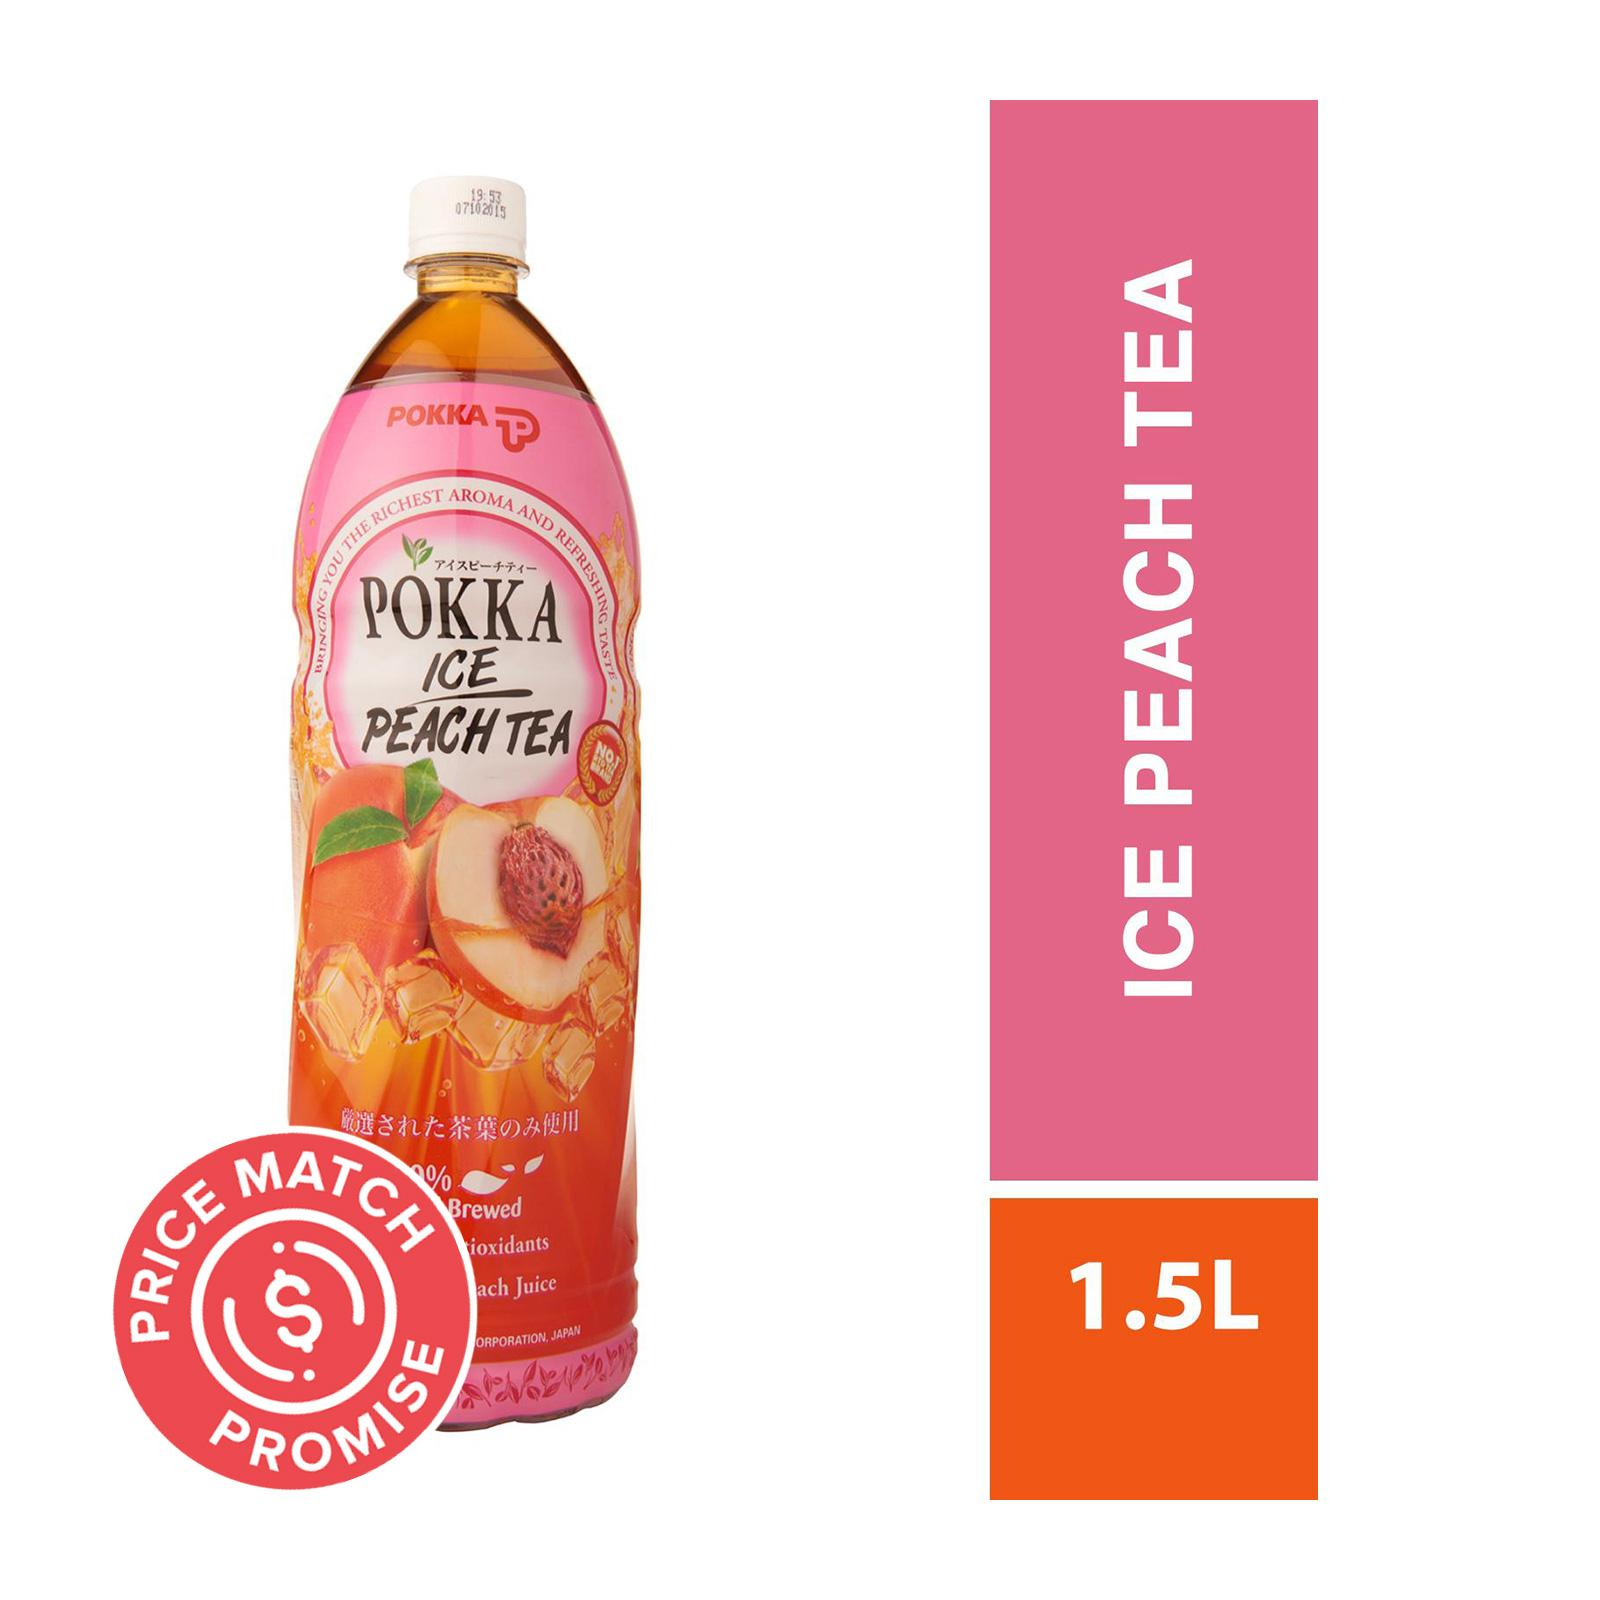 POKKA Ice Peach Tea 1.5L